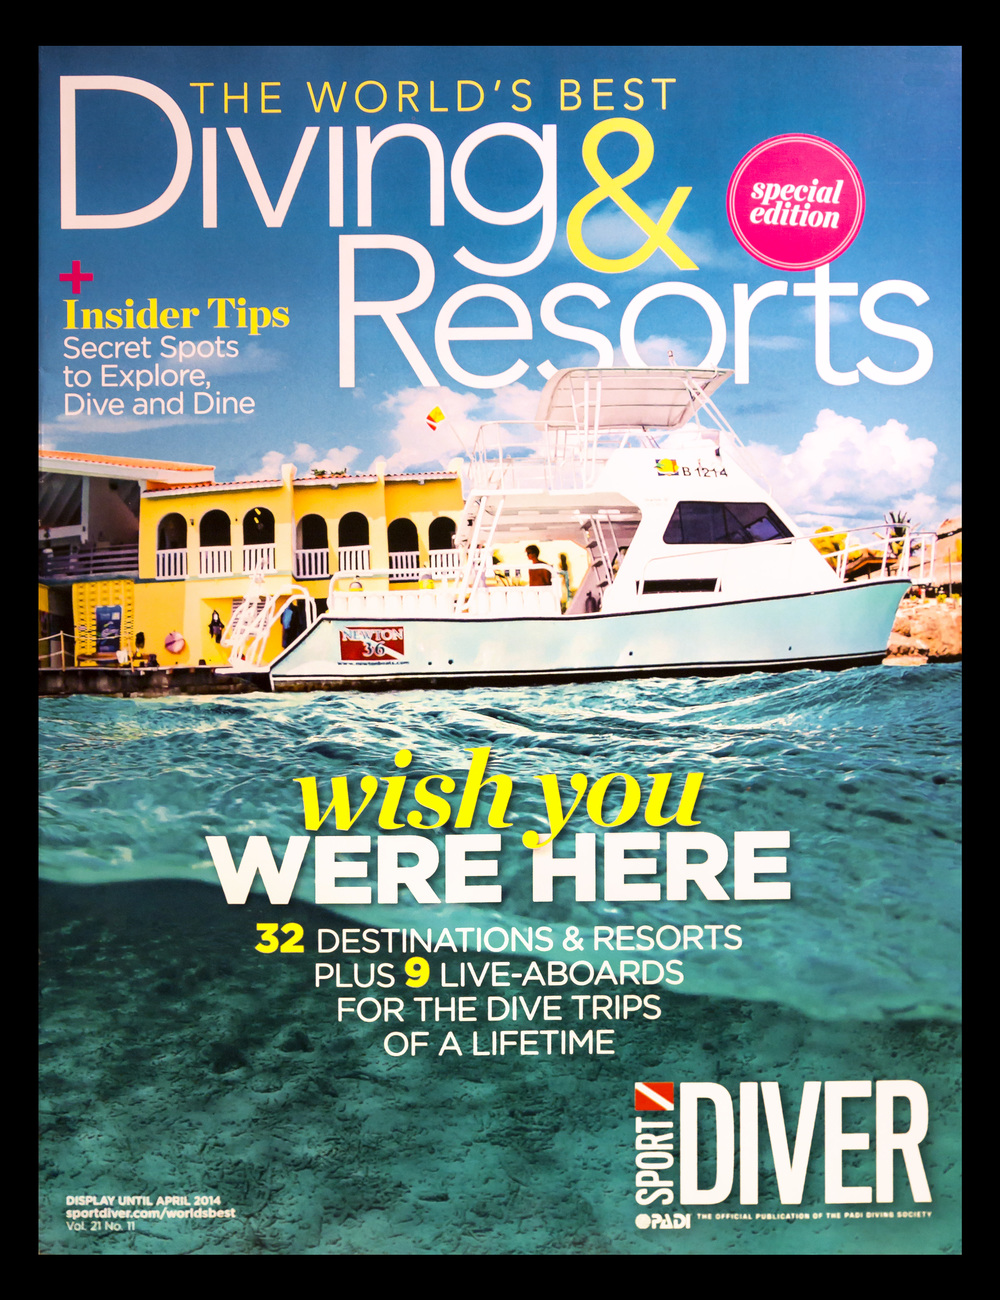 Beth Watson's cover shot Sport Diver Magazine.